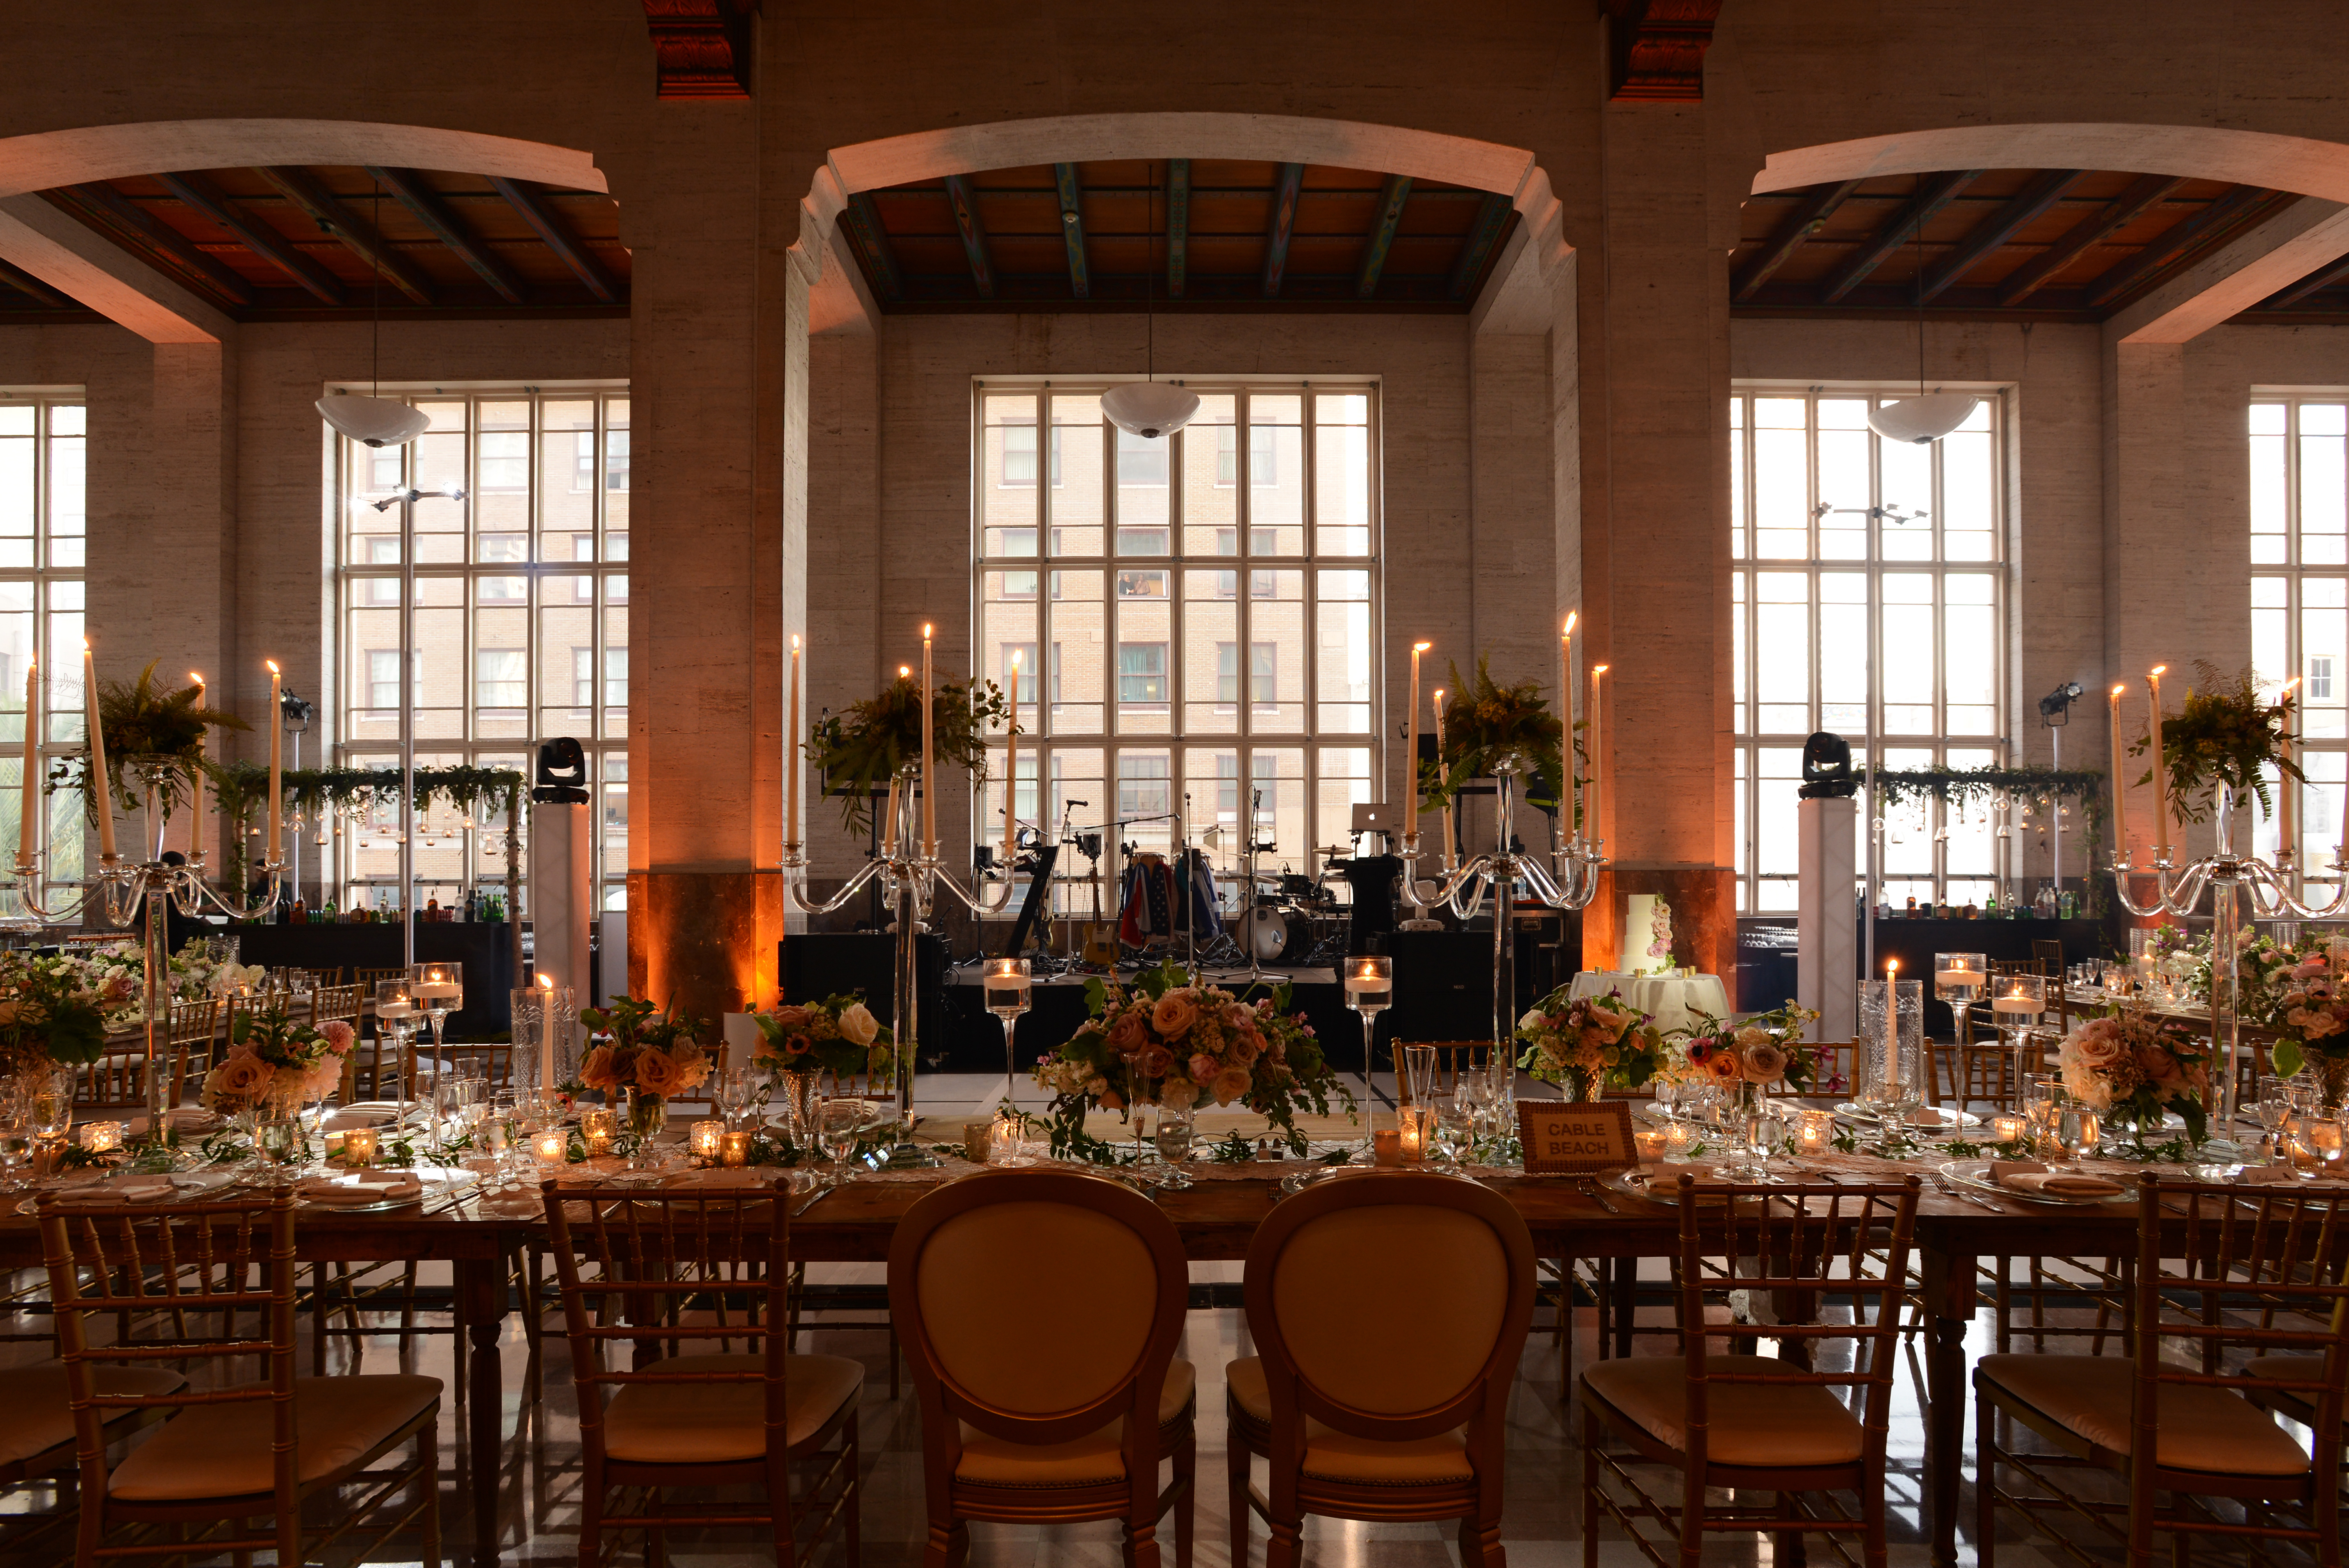 Romantic Indoor Garden Wedding - The Historic Alfred I. Dupont Building